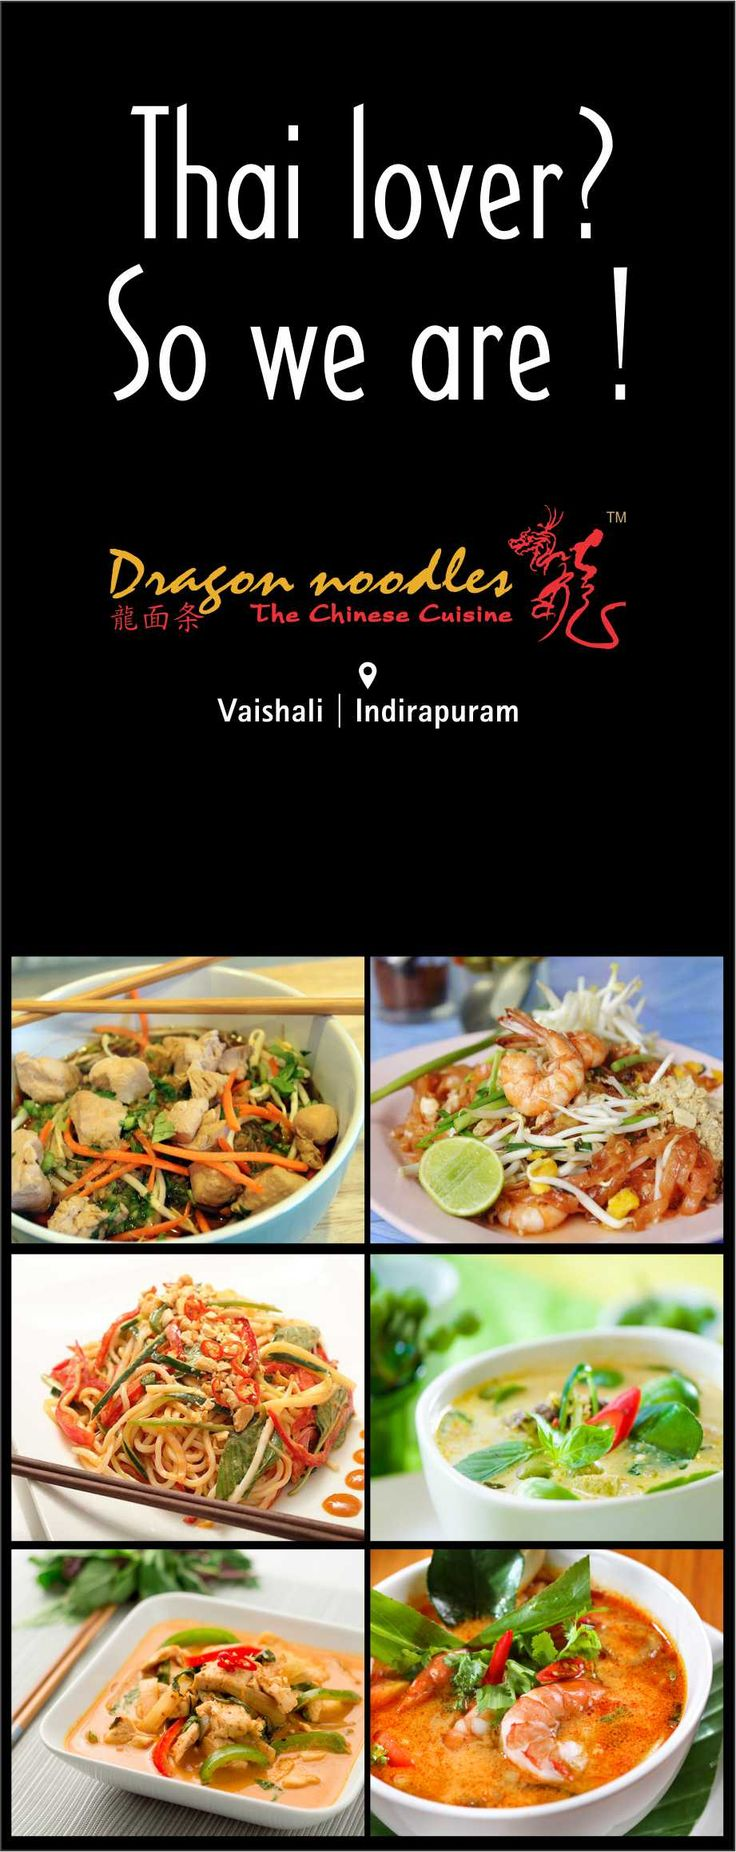 Presenting an exotic range of Thai delicacies, customized to your taste. #DragonNoodles #Chinese #Food #Ghaziabad #foodies #ThaiFood